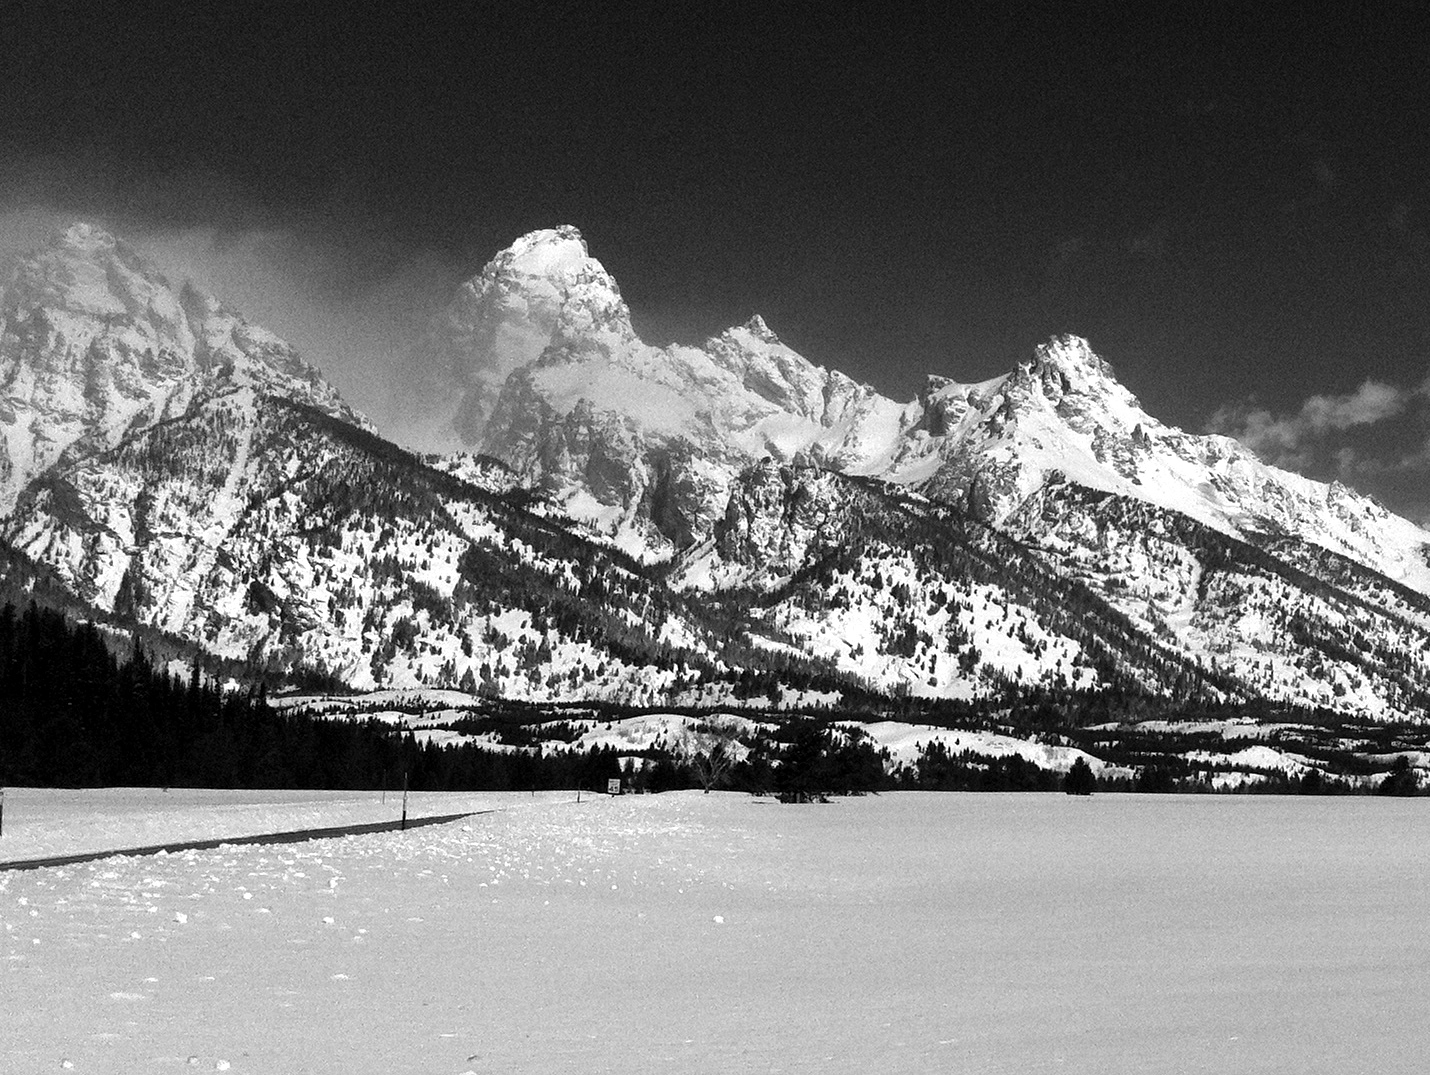 The Mountain Pulse Jackson Hole Photo of the Day 04/12/11 - The Grand Teton